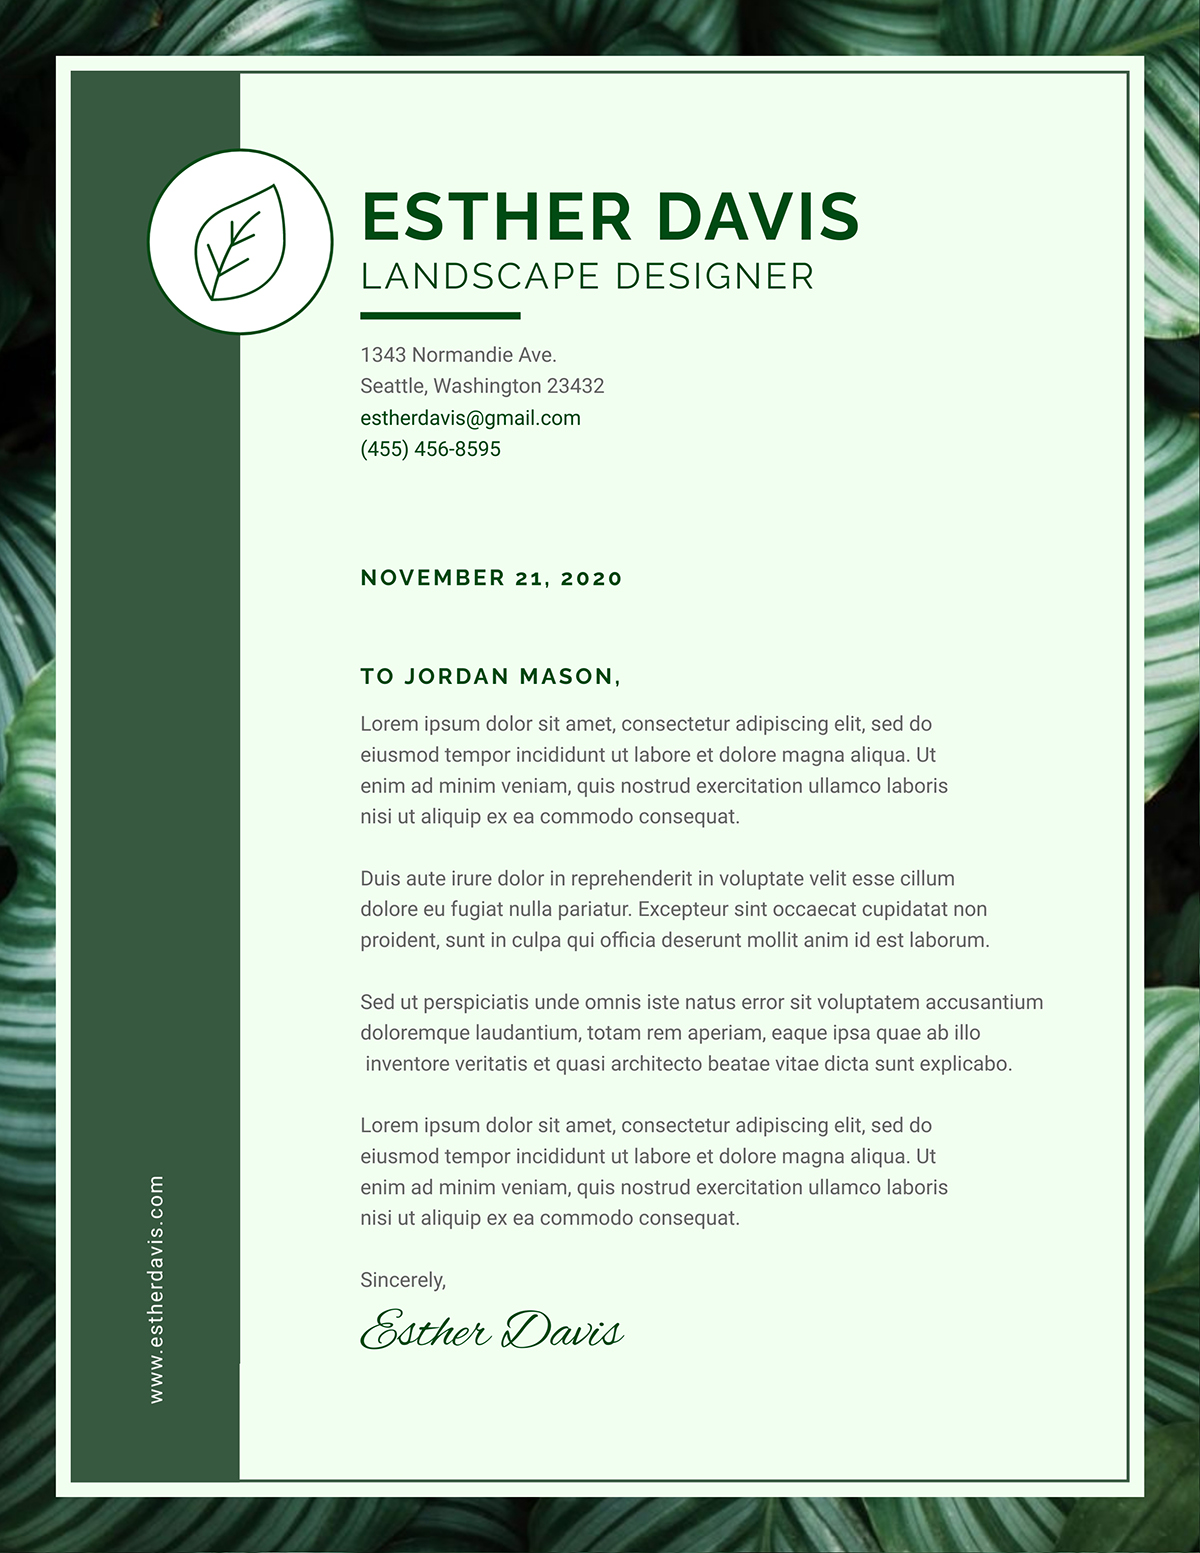 Green and leafy business letter template available in Visme.